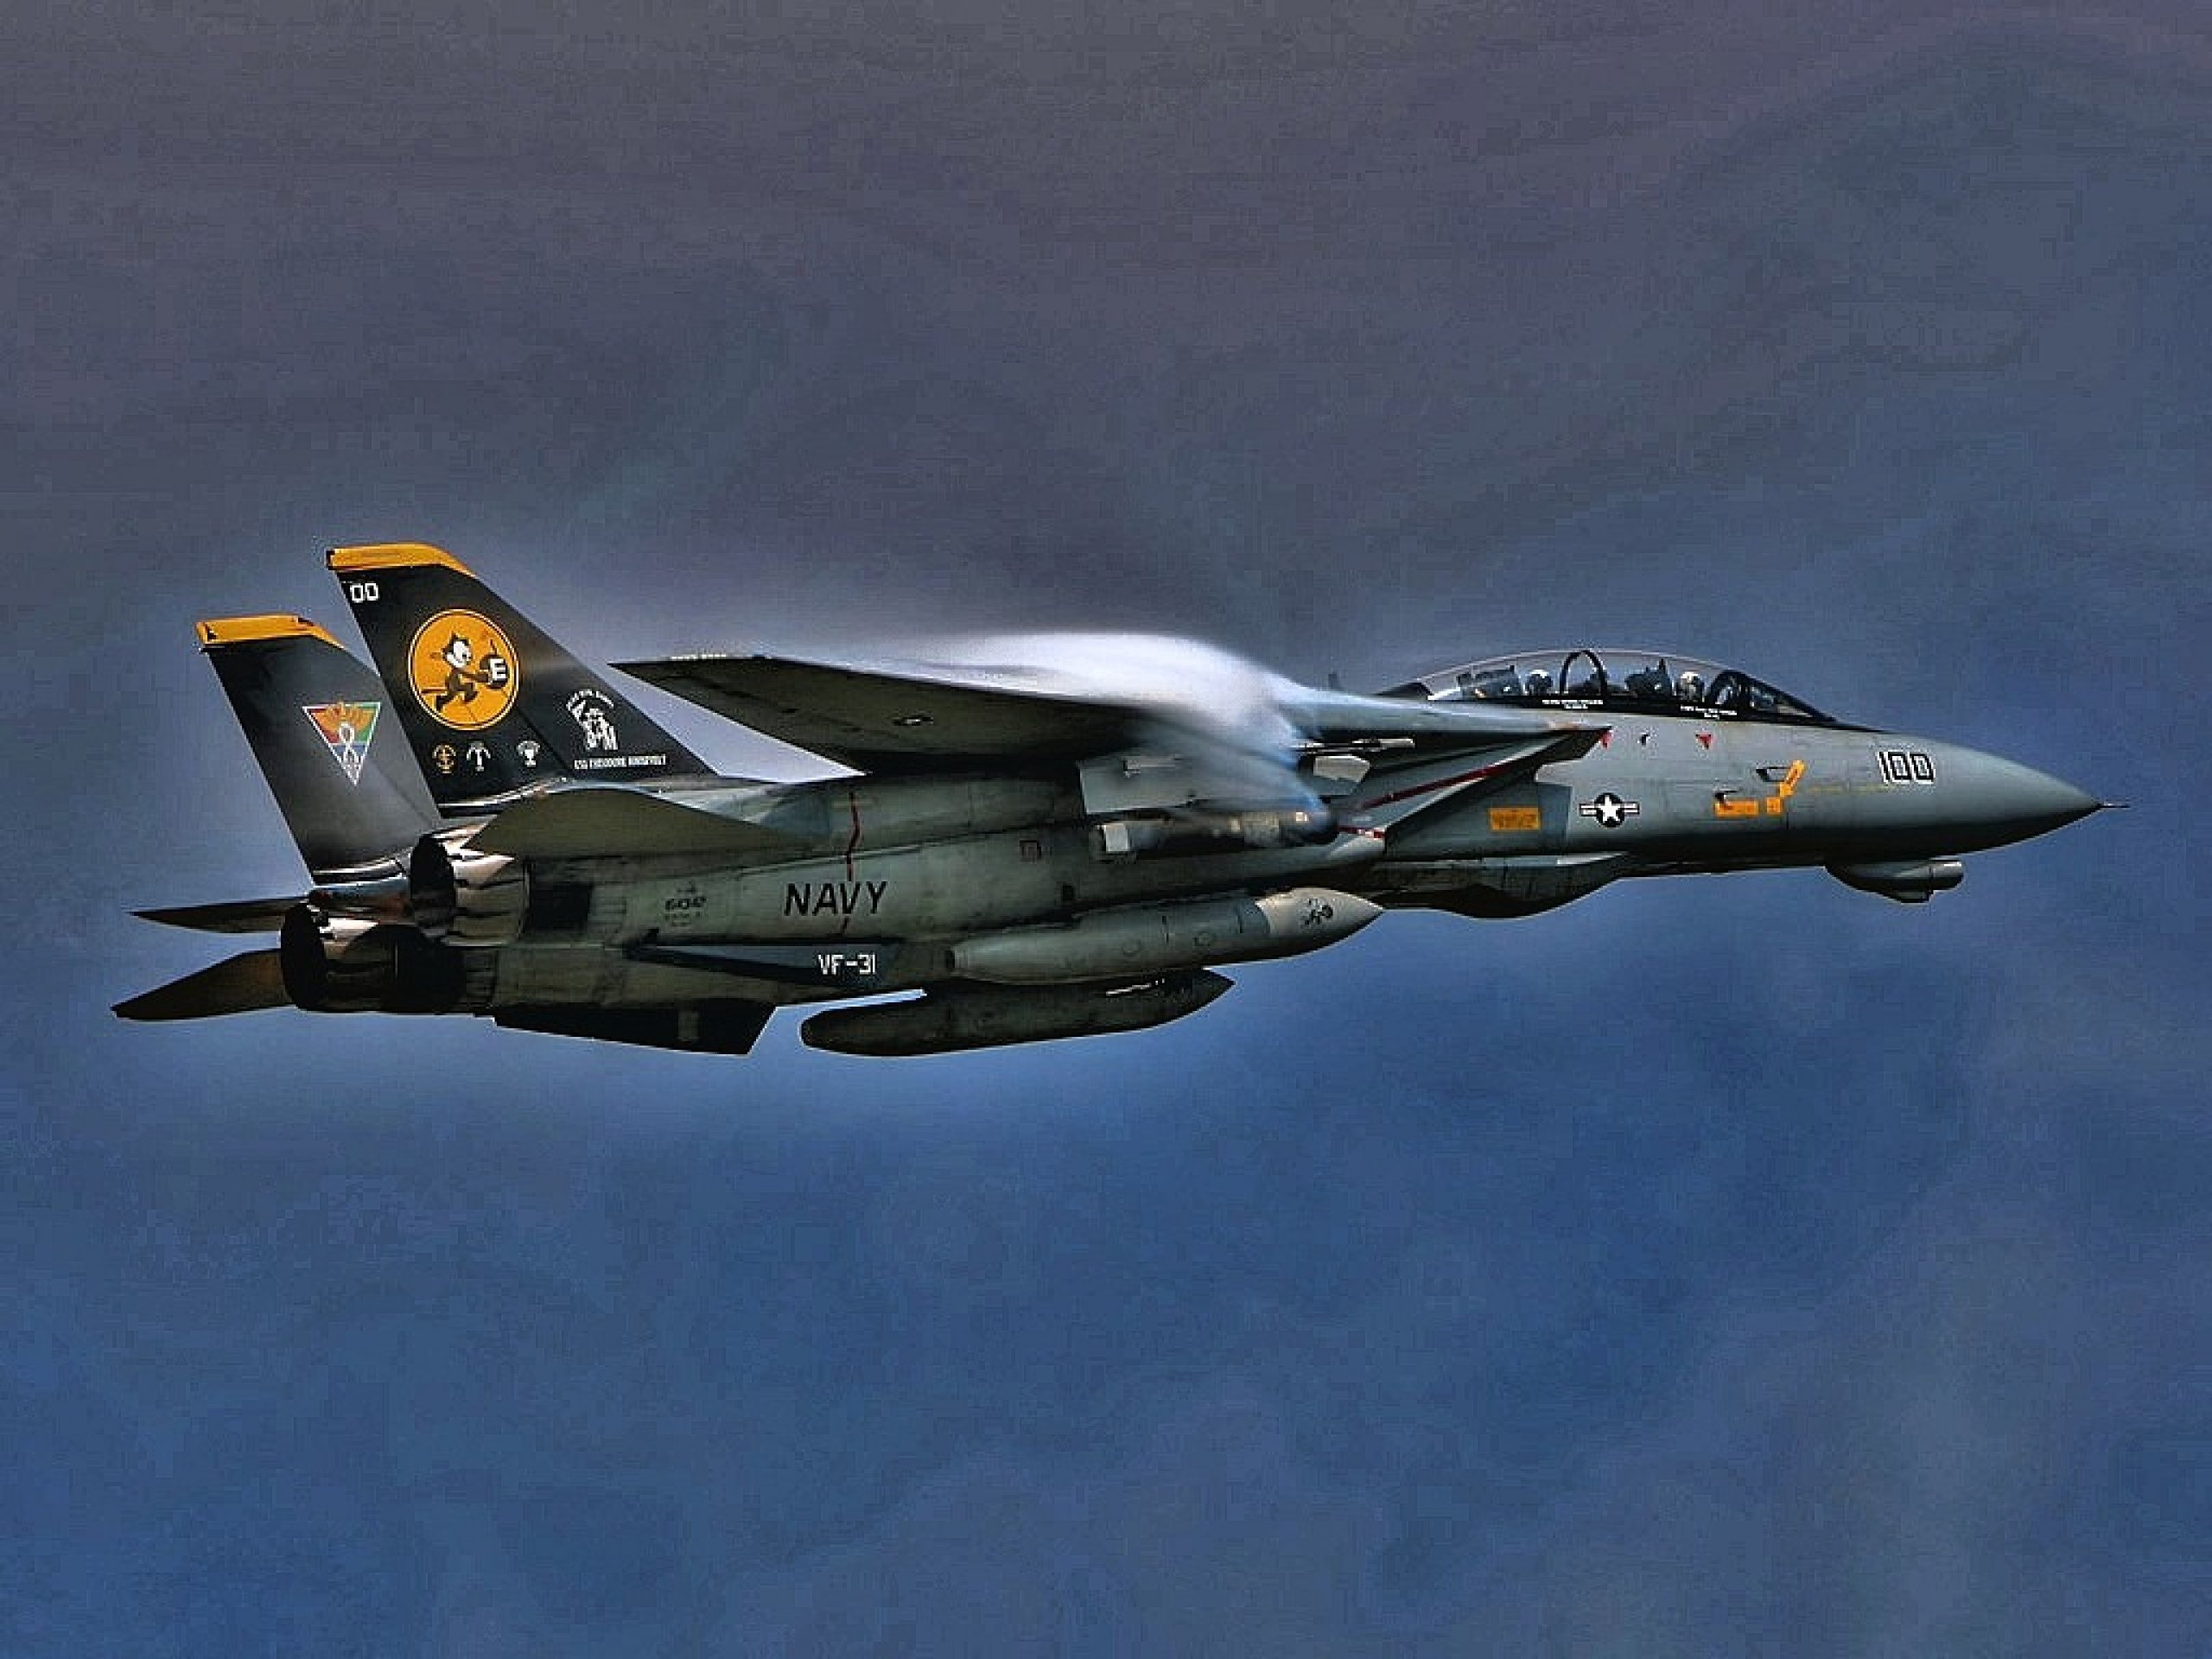 Air airplanes f 14 Fighter Flight force jets Military pilots sky soldiers tomcat warriors weapons